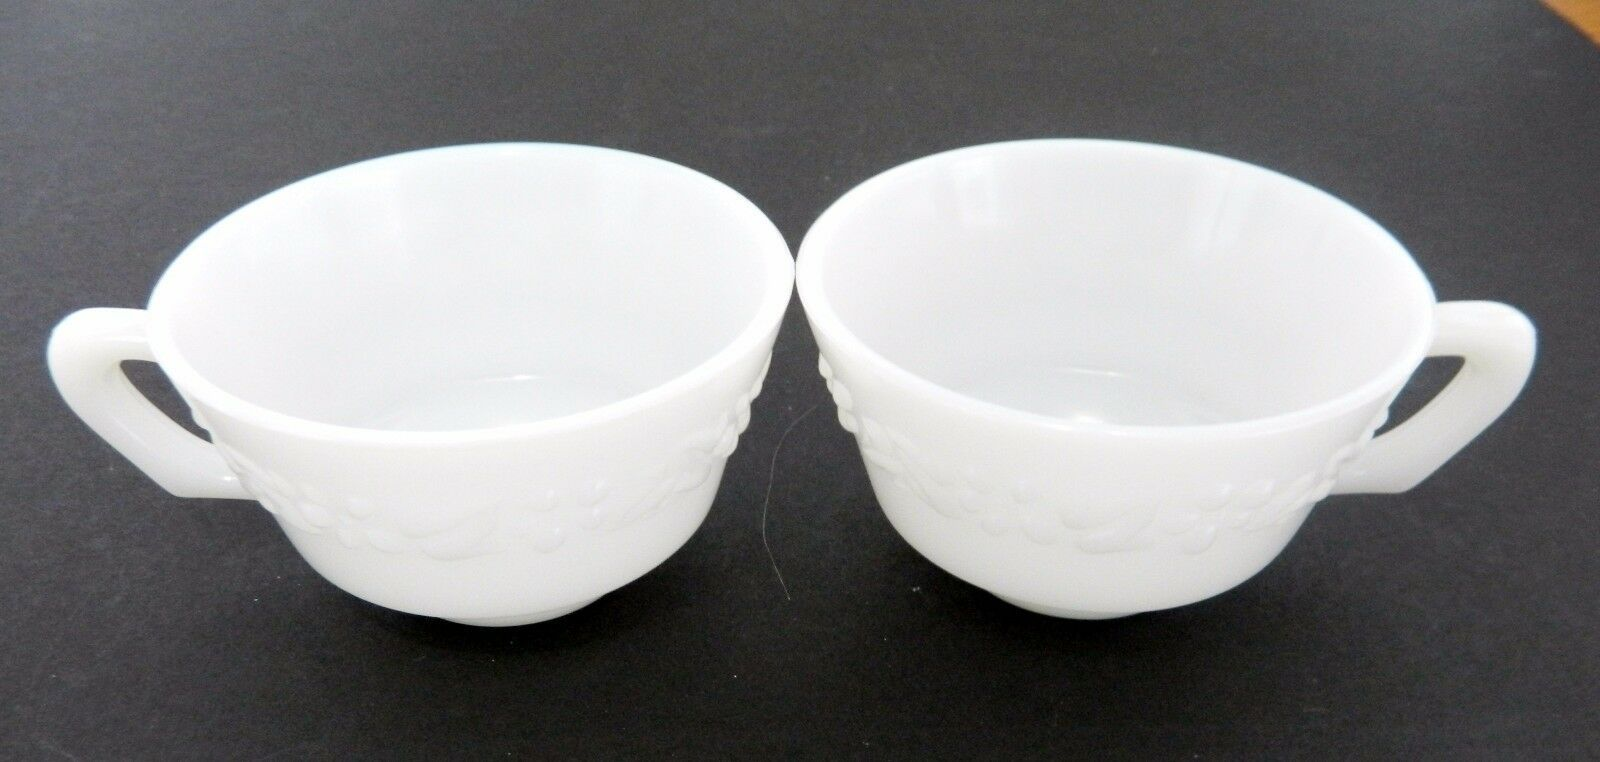 Primary image for Hazel Atlas Milk Glass Coffee / Tea Cups Embossed Floral Print HA Mark Lot of 2